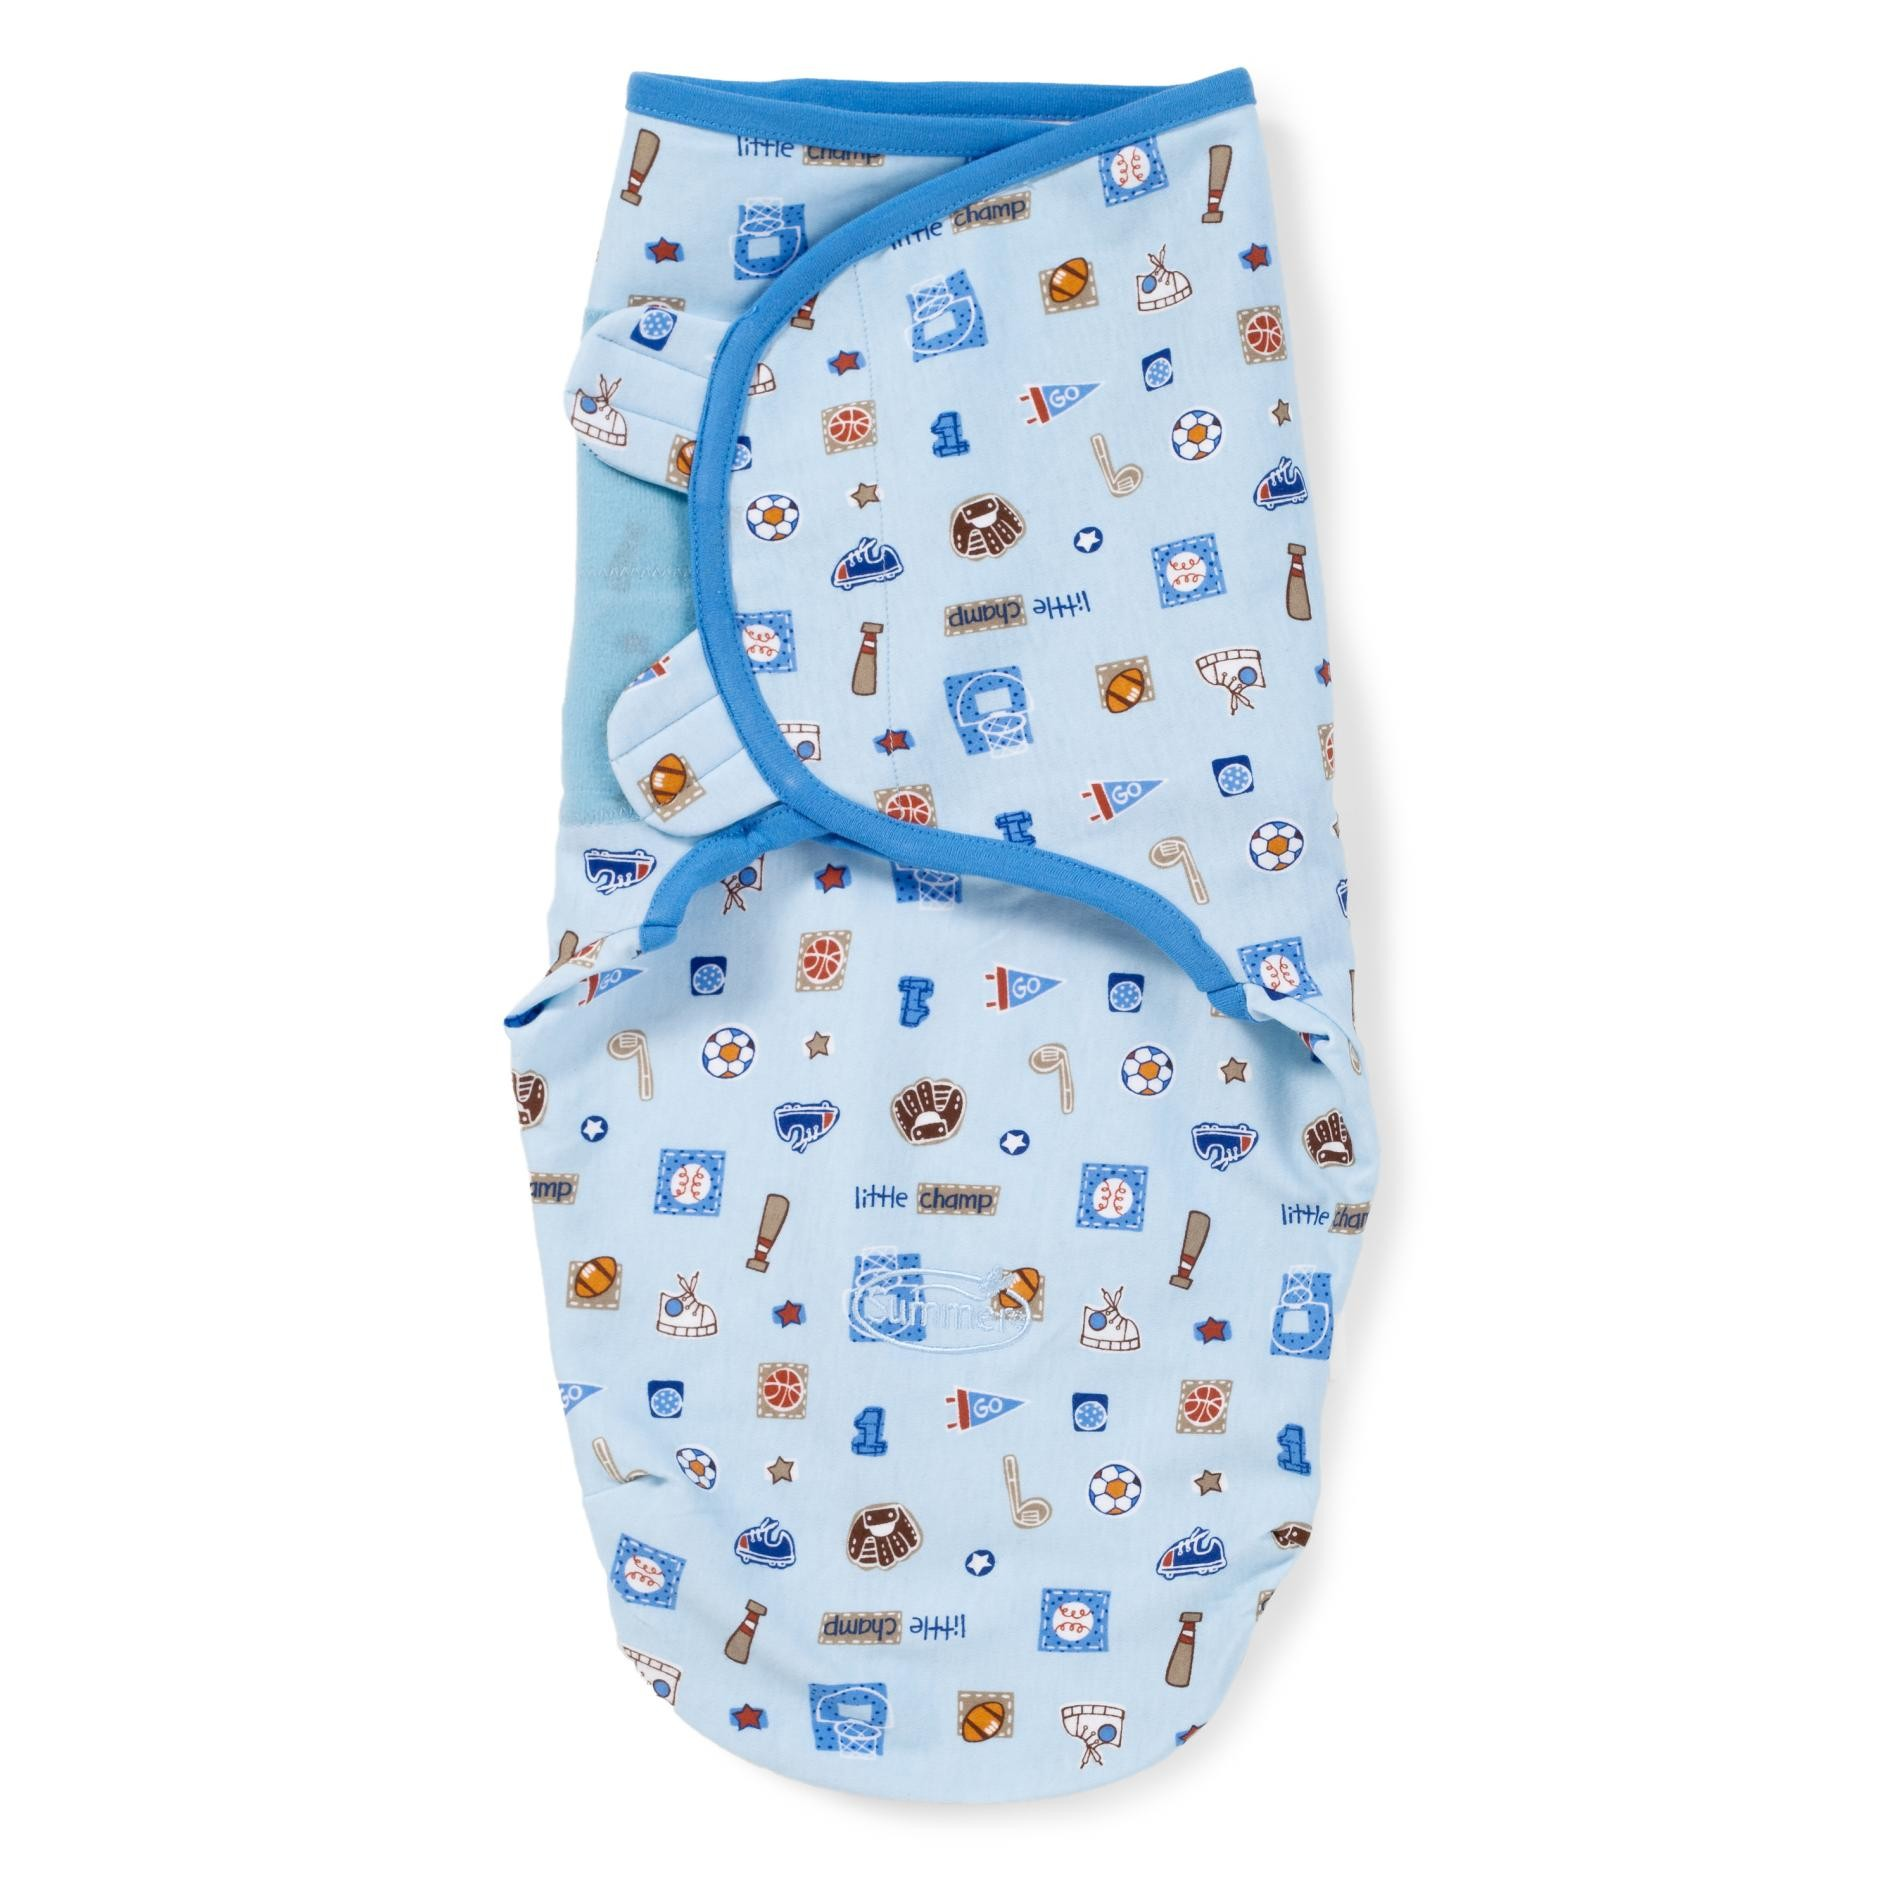 Конверт на липучке Summer Infant Swaddleme Little Champ, S-M, цвет: голубойSummer Infant<br>Конверт на липучке Summer Infant Swaddleme Little Champ, S-M, цвет: голубой<br>